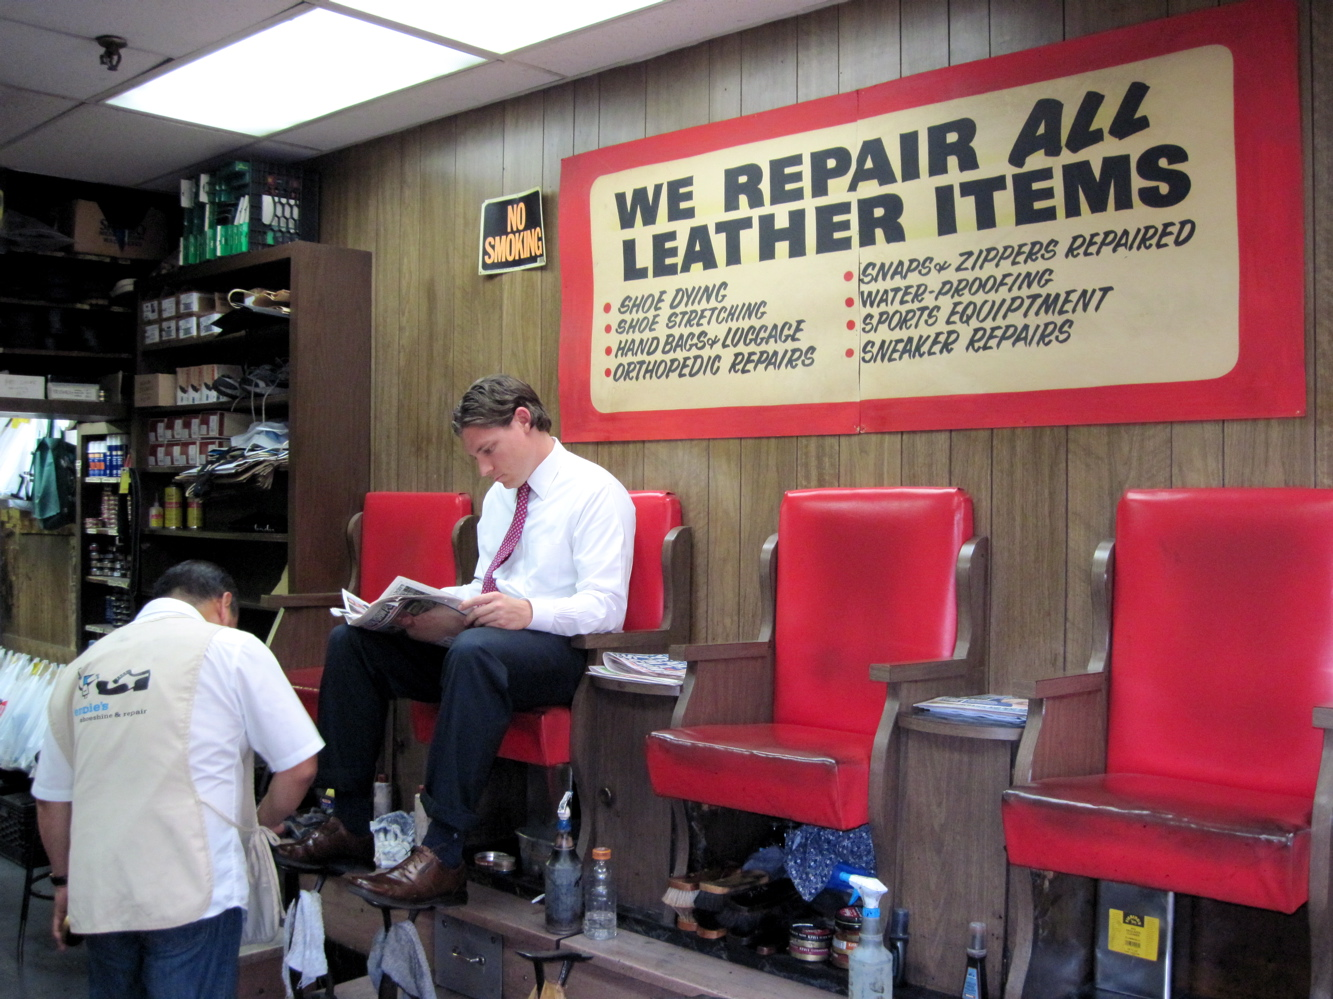 Mitch Broder's Vintage New York: Tony's Shoe Repair: He Keeps the Shine on the Family Business